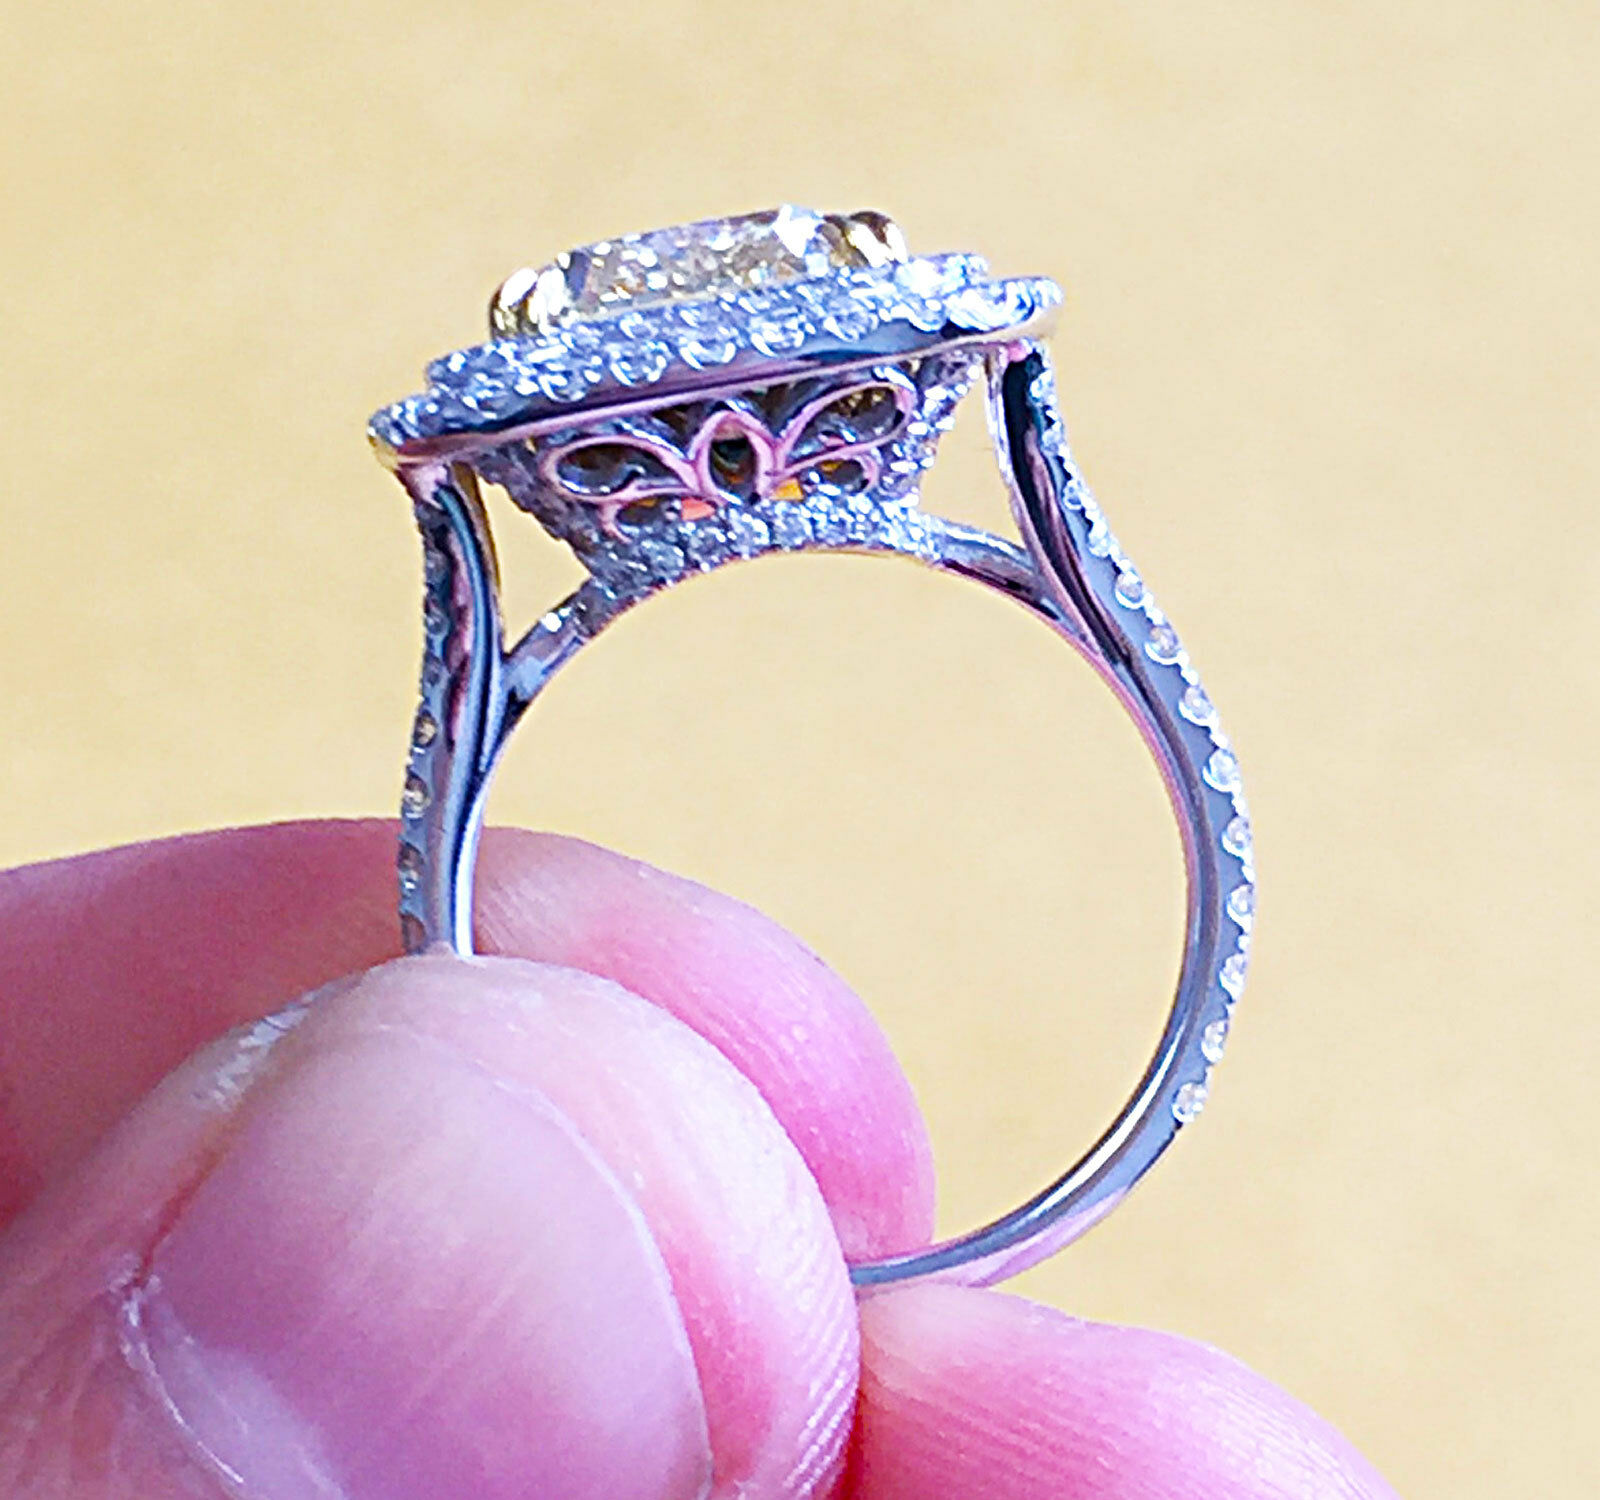 6.00 CARATS 14K SOLID WHITE gold CUSHION SIMULATED DIAMOND ENGAGEMENT RING HALO